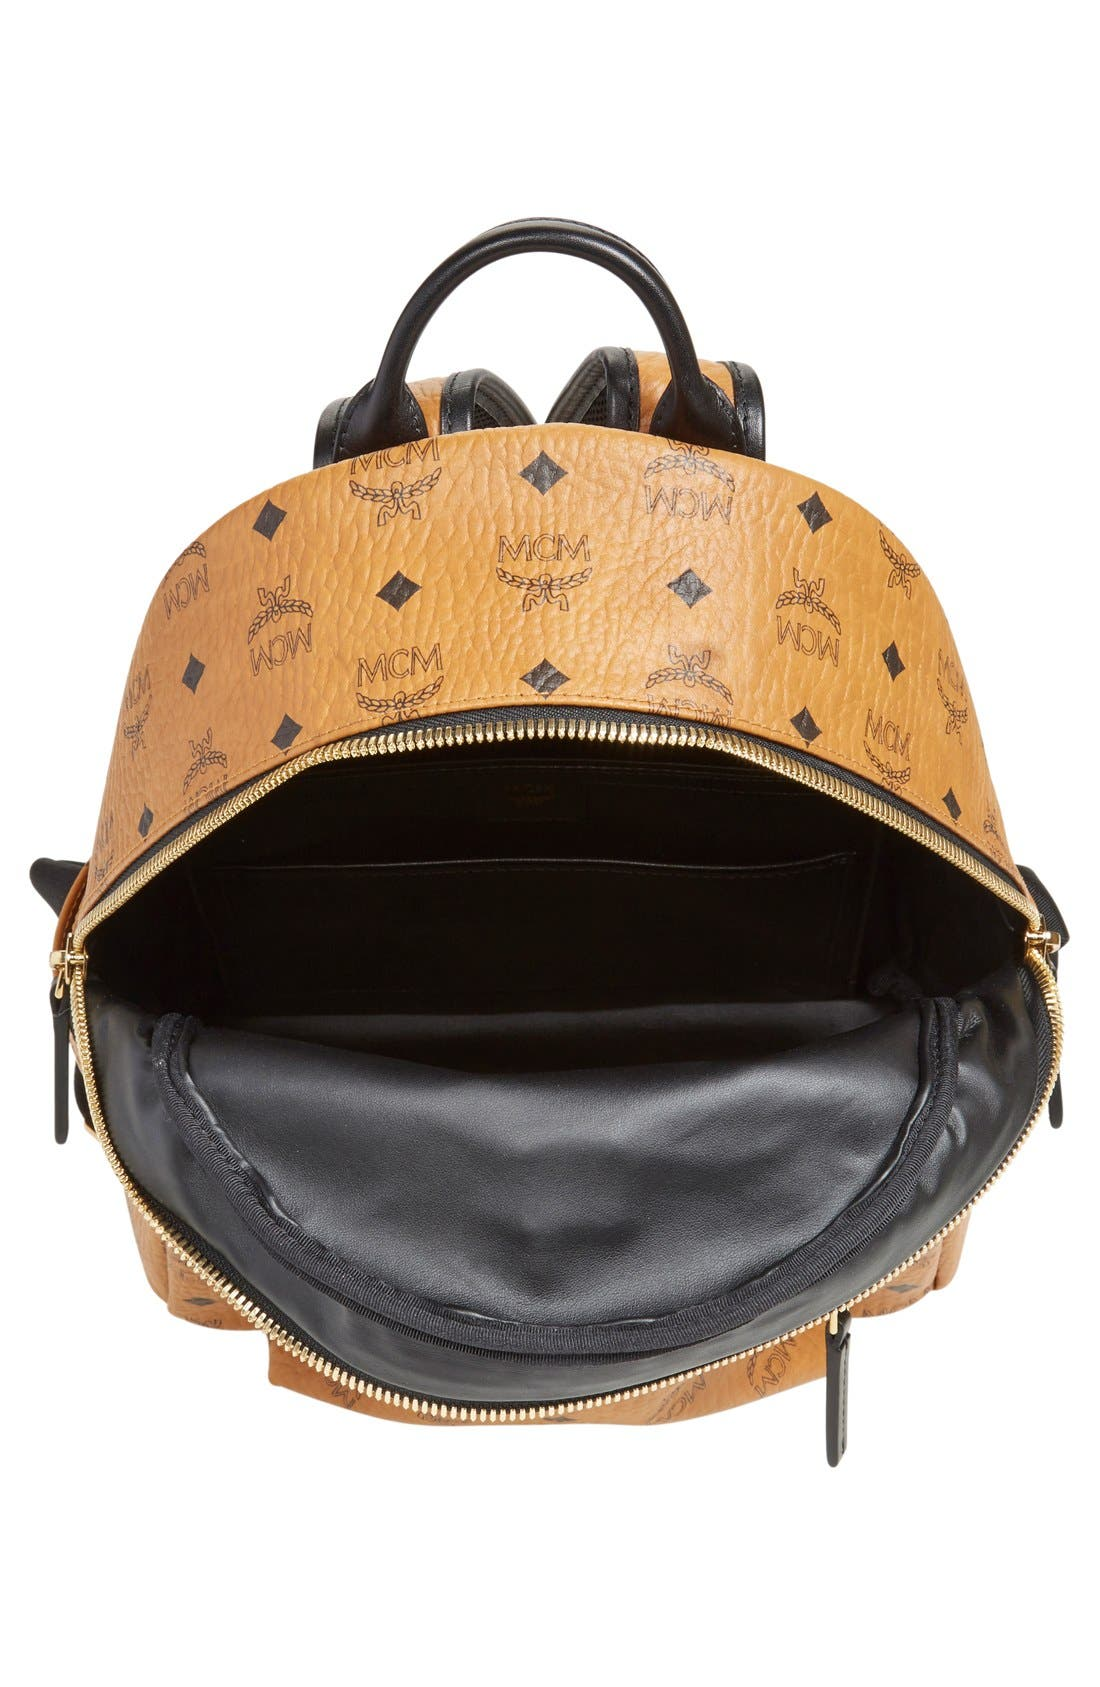 Alternate Image 4  - MCM Backpack 'Small Stark' Coated Canvas Backpack (Nordstrom Exclusive)